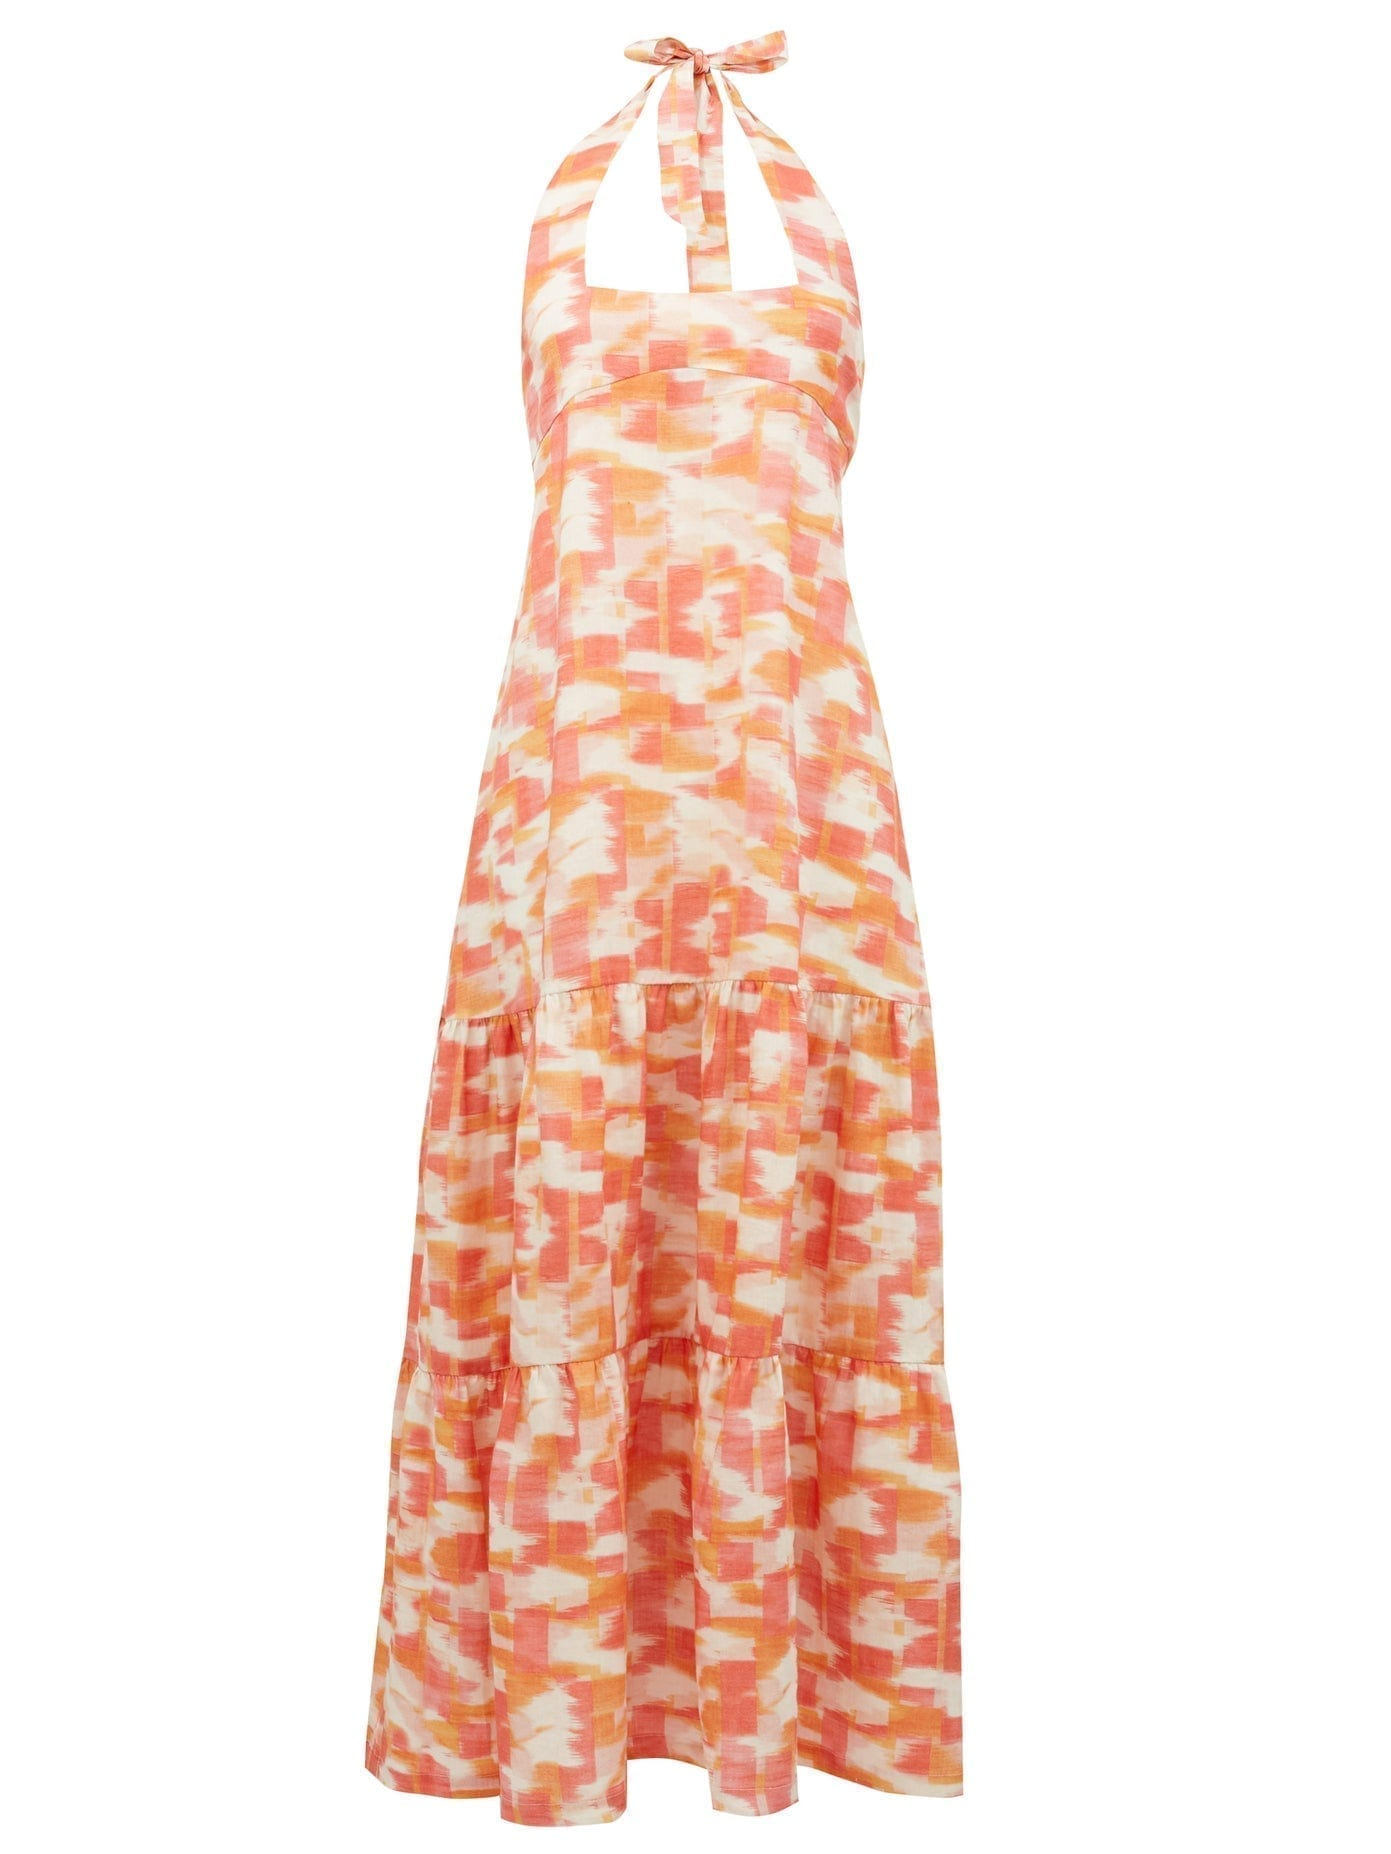 THREE GRACES LONDON Ofelia Abstract Ikat-Print Halterneck Linen Dress